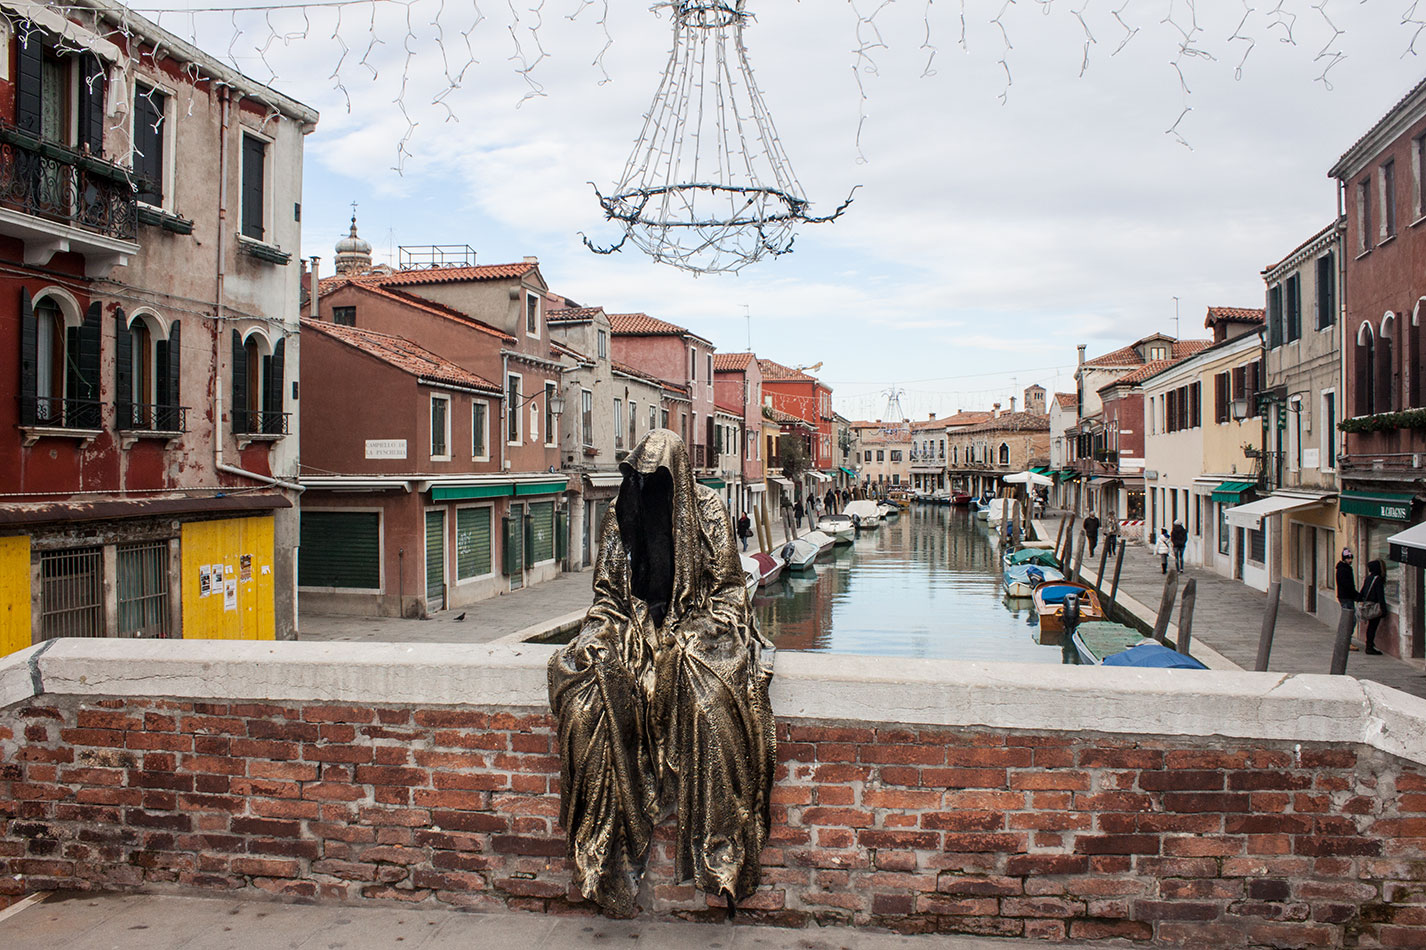 Italia-Venice-Murano-Berengo-glas-studio-glasstress-guardians-of-time-by-Manfred-Kili-Kielnhofer-contemporary-art-design-show-7166